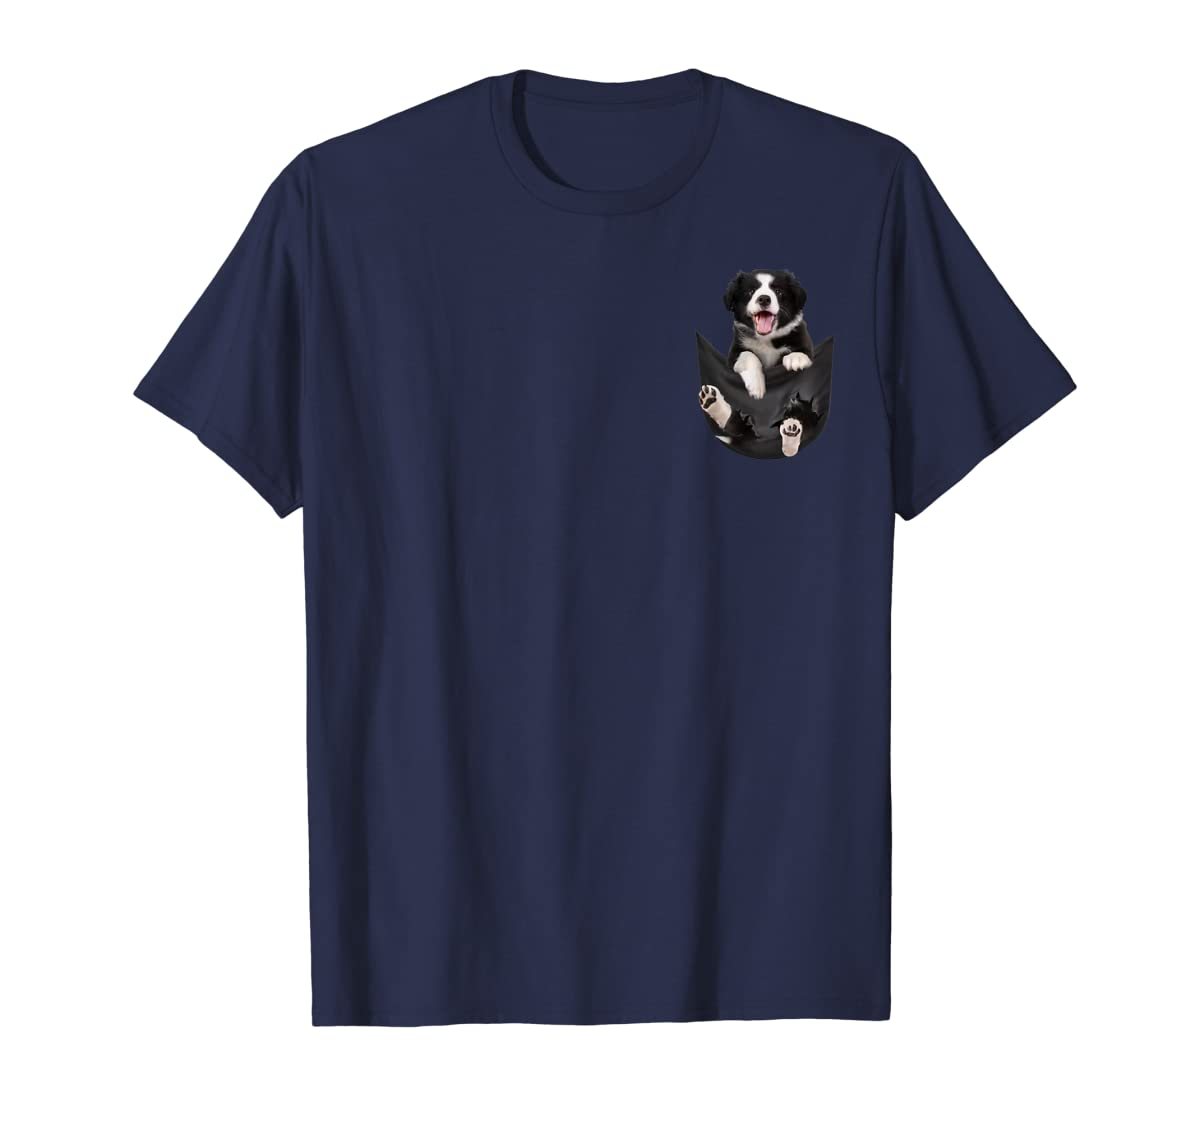 Gift dog funny cute shirt - Border Collie in pocket shirt T-Shirt-Men's T-Shirt-Navy